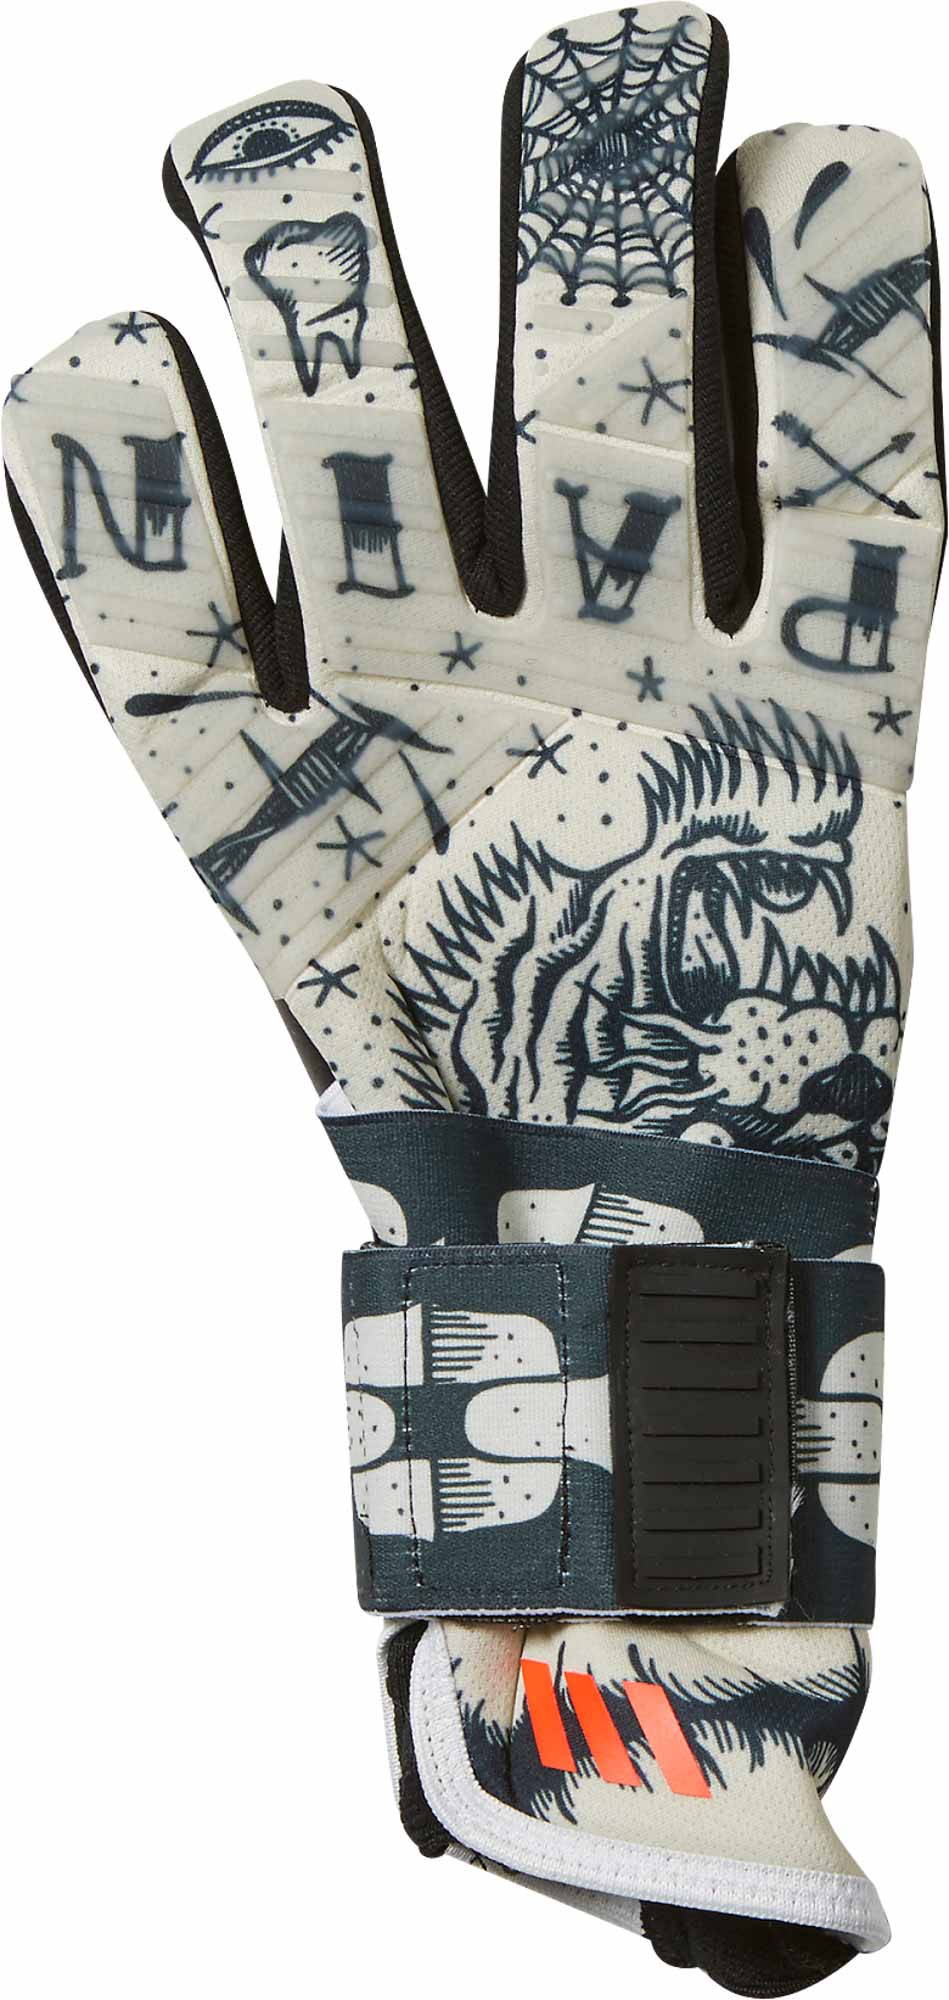 release date 1a668 613b9 adidas ACE 2-Face Goalkeeper Gloves - White & Black - Soccer ...